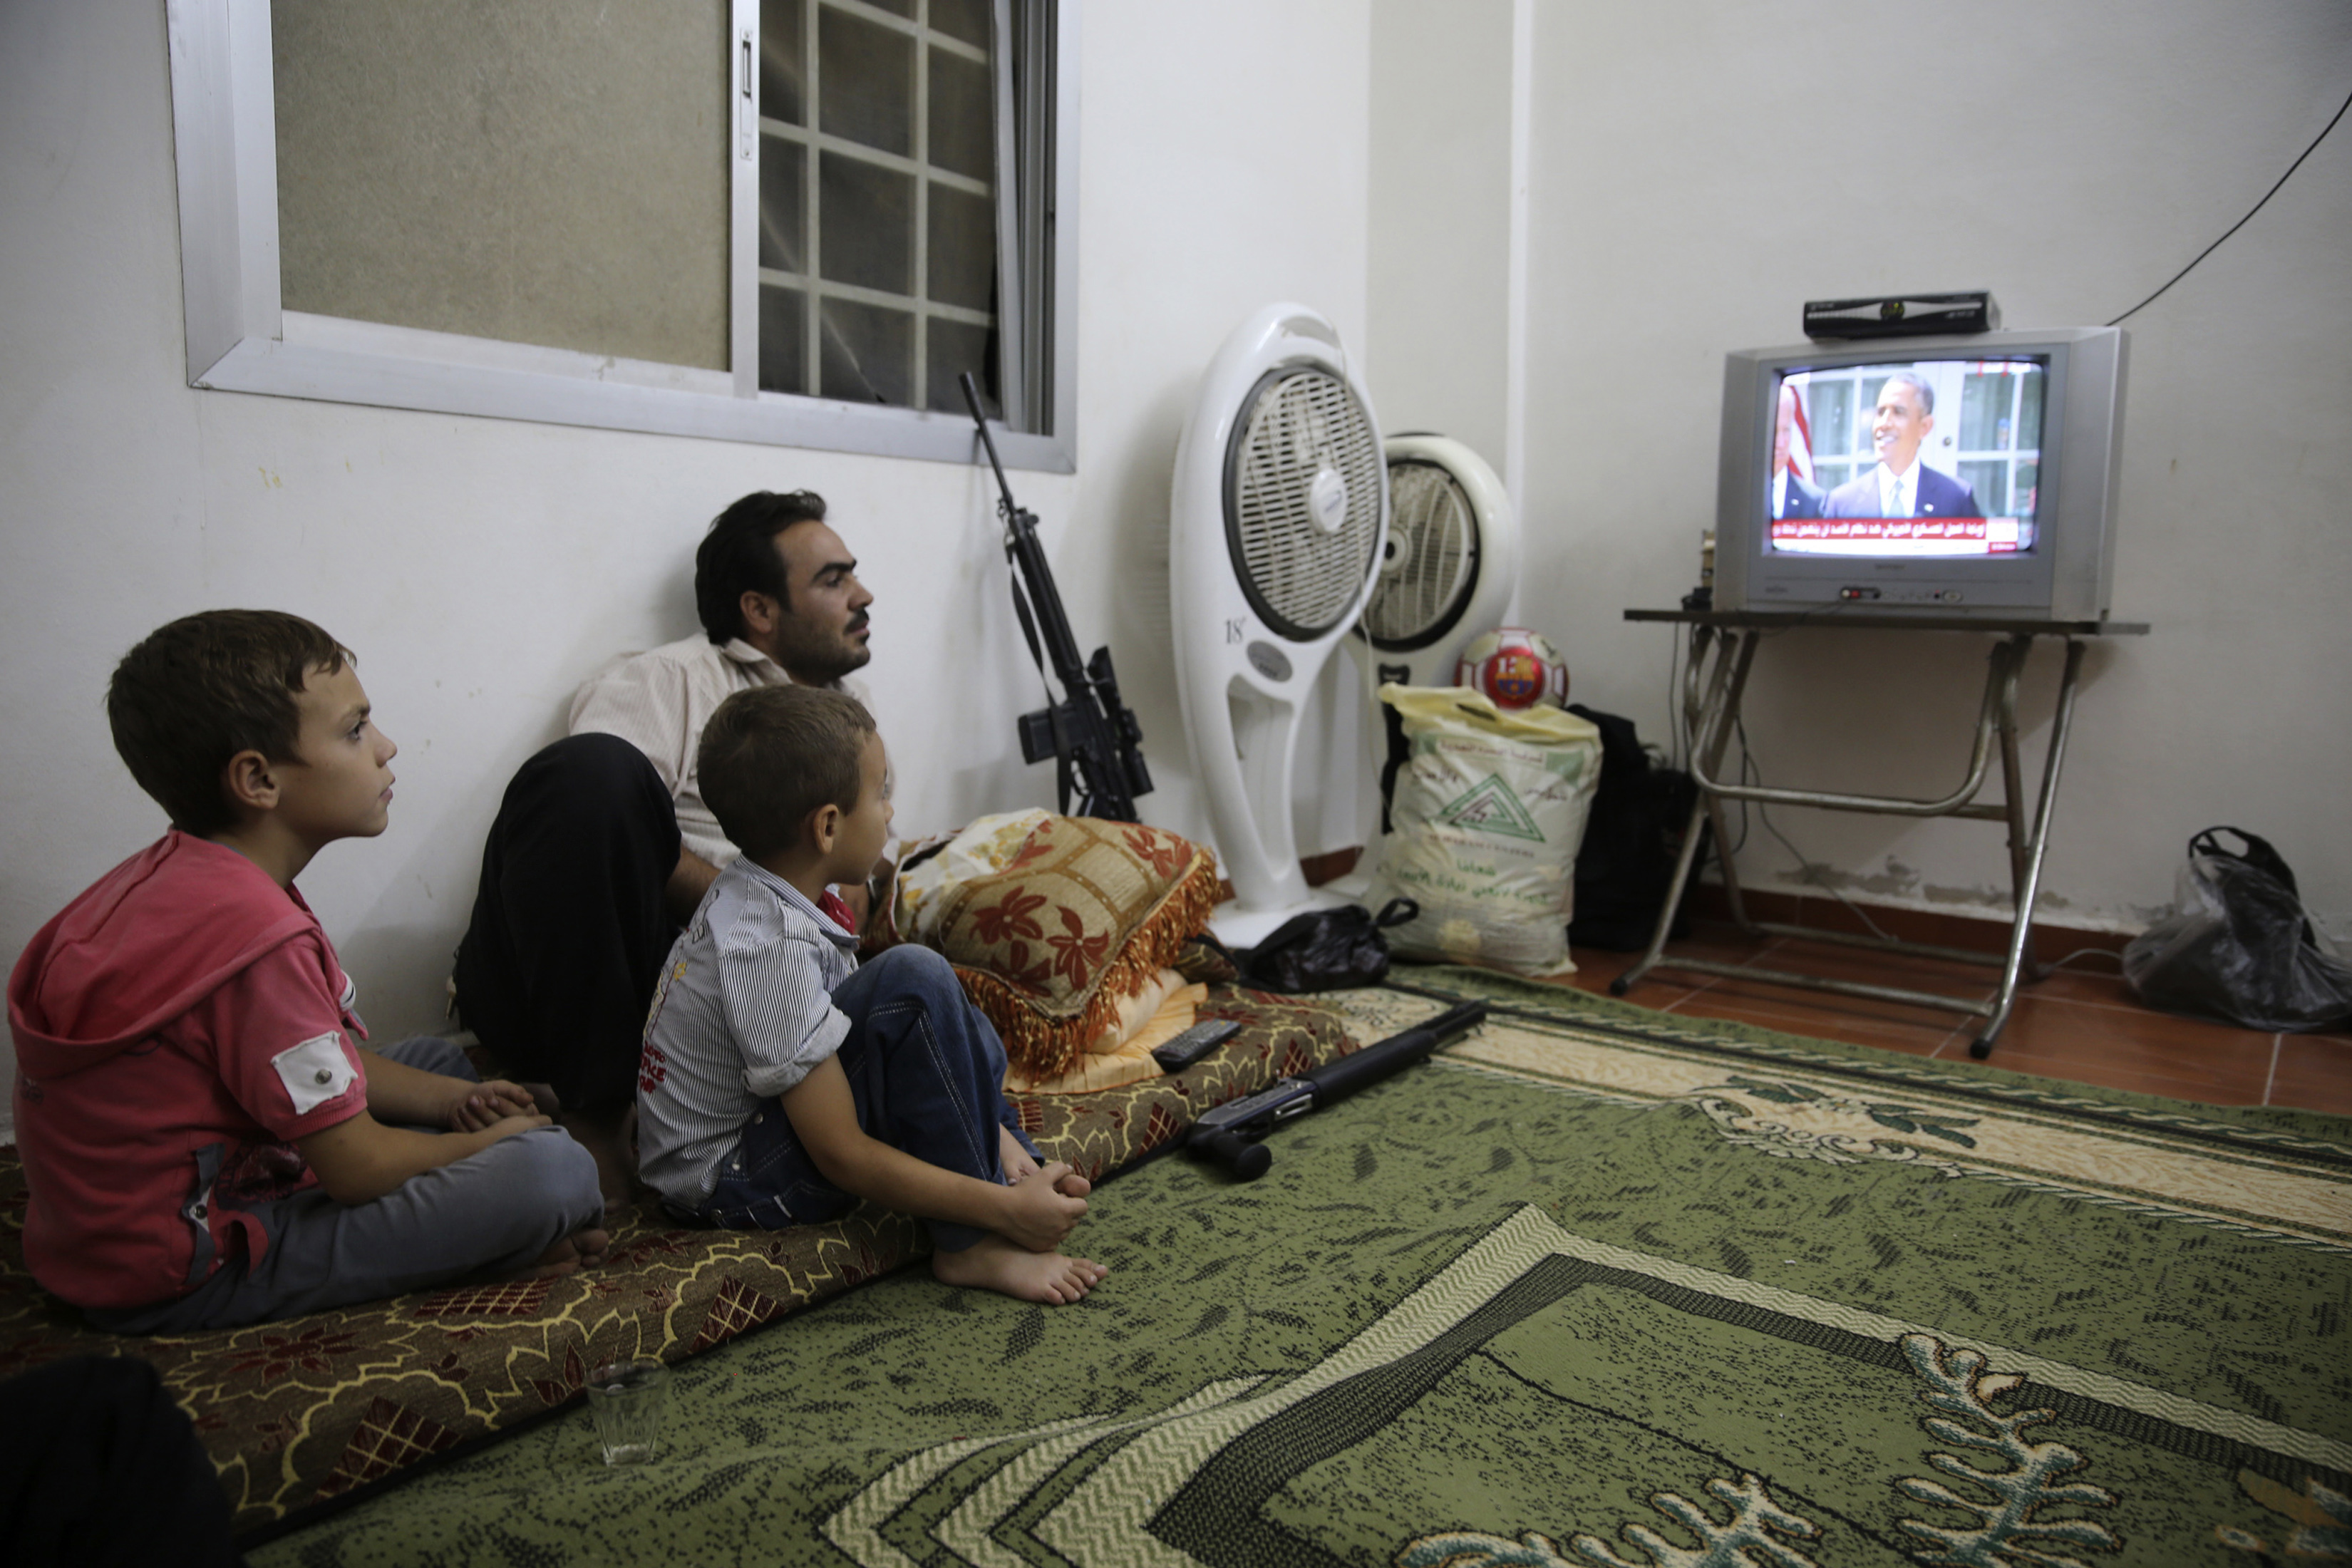 A Free Syrian Army fighter watches U.S. President Barack Obama's speech with his family in Ghouta, Damascus August 31, 2013. Obama on Saturday backed away from an imminent military strike against Syria to seek the approval of the U.S. Congress, in a ...